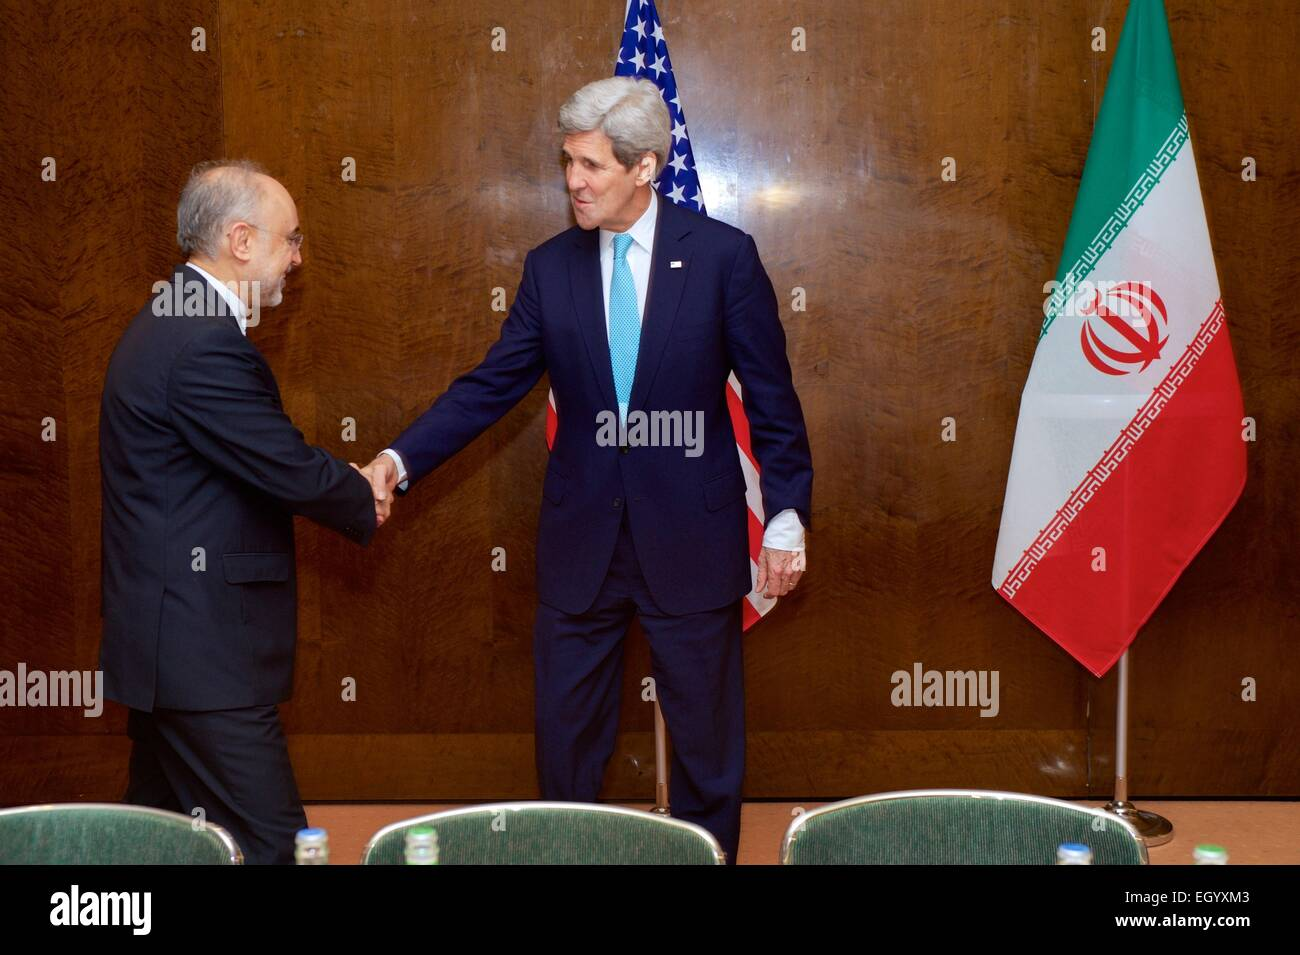 US Secretary of State John Kerry shakes hands with Dr. Ali Akbar Salehi, the Vice President of Iran for Atomic Energy - Stock Image